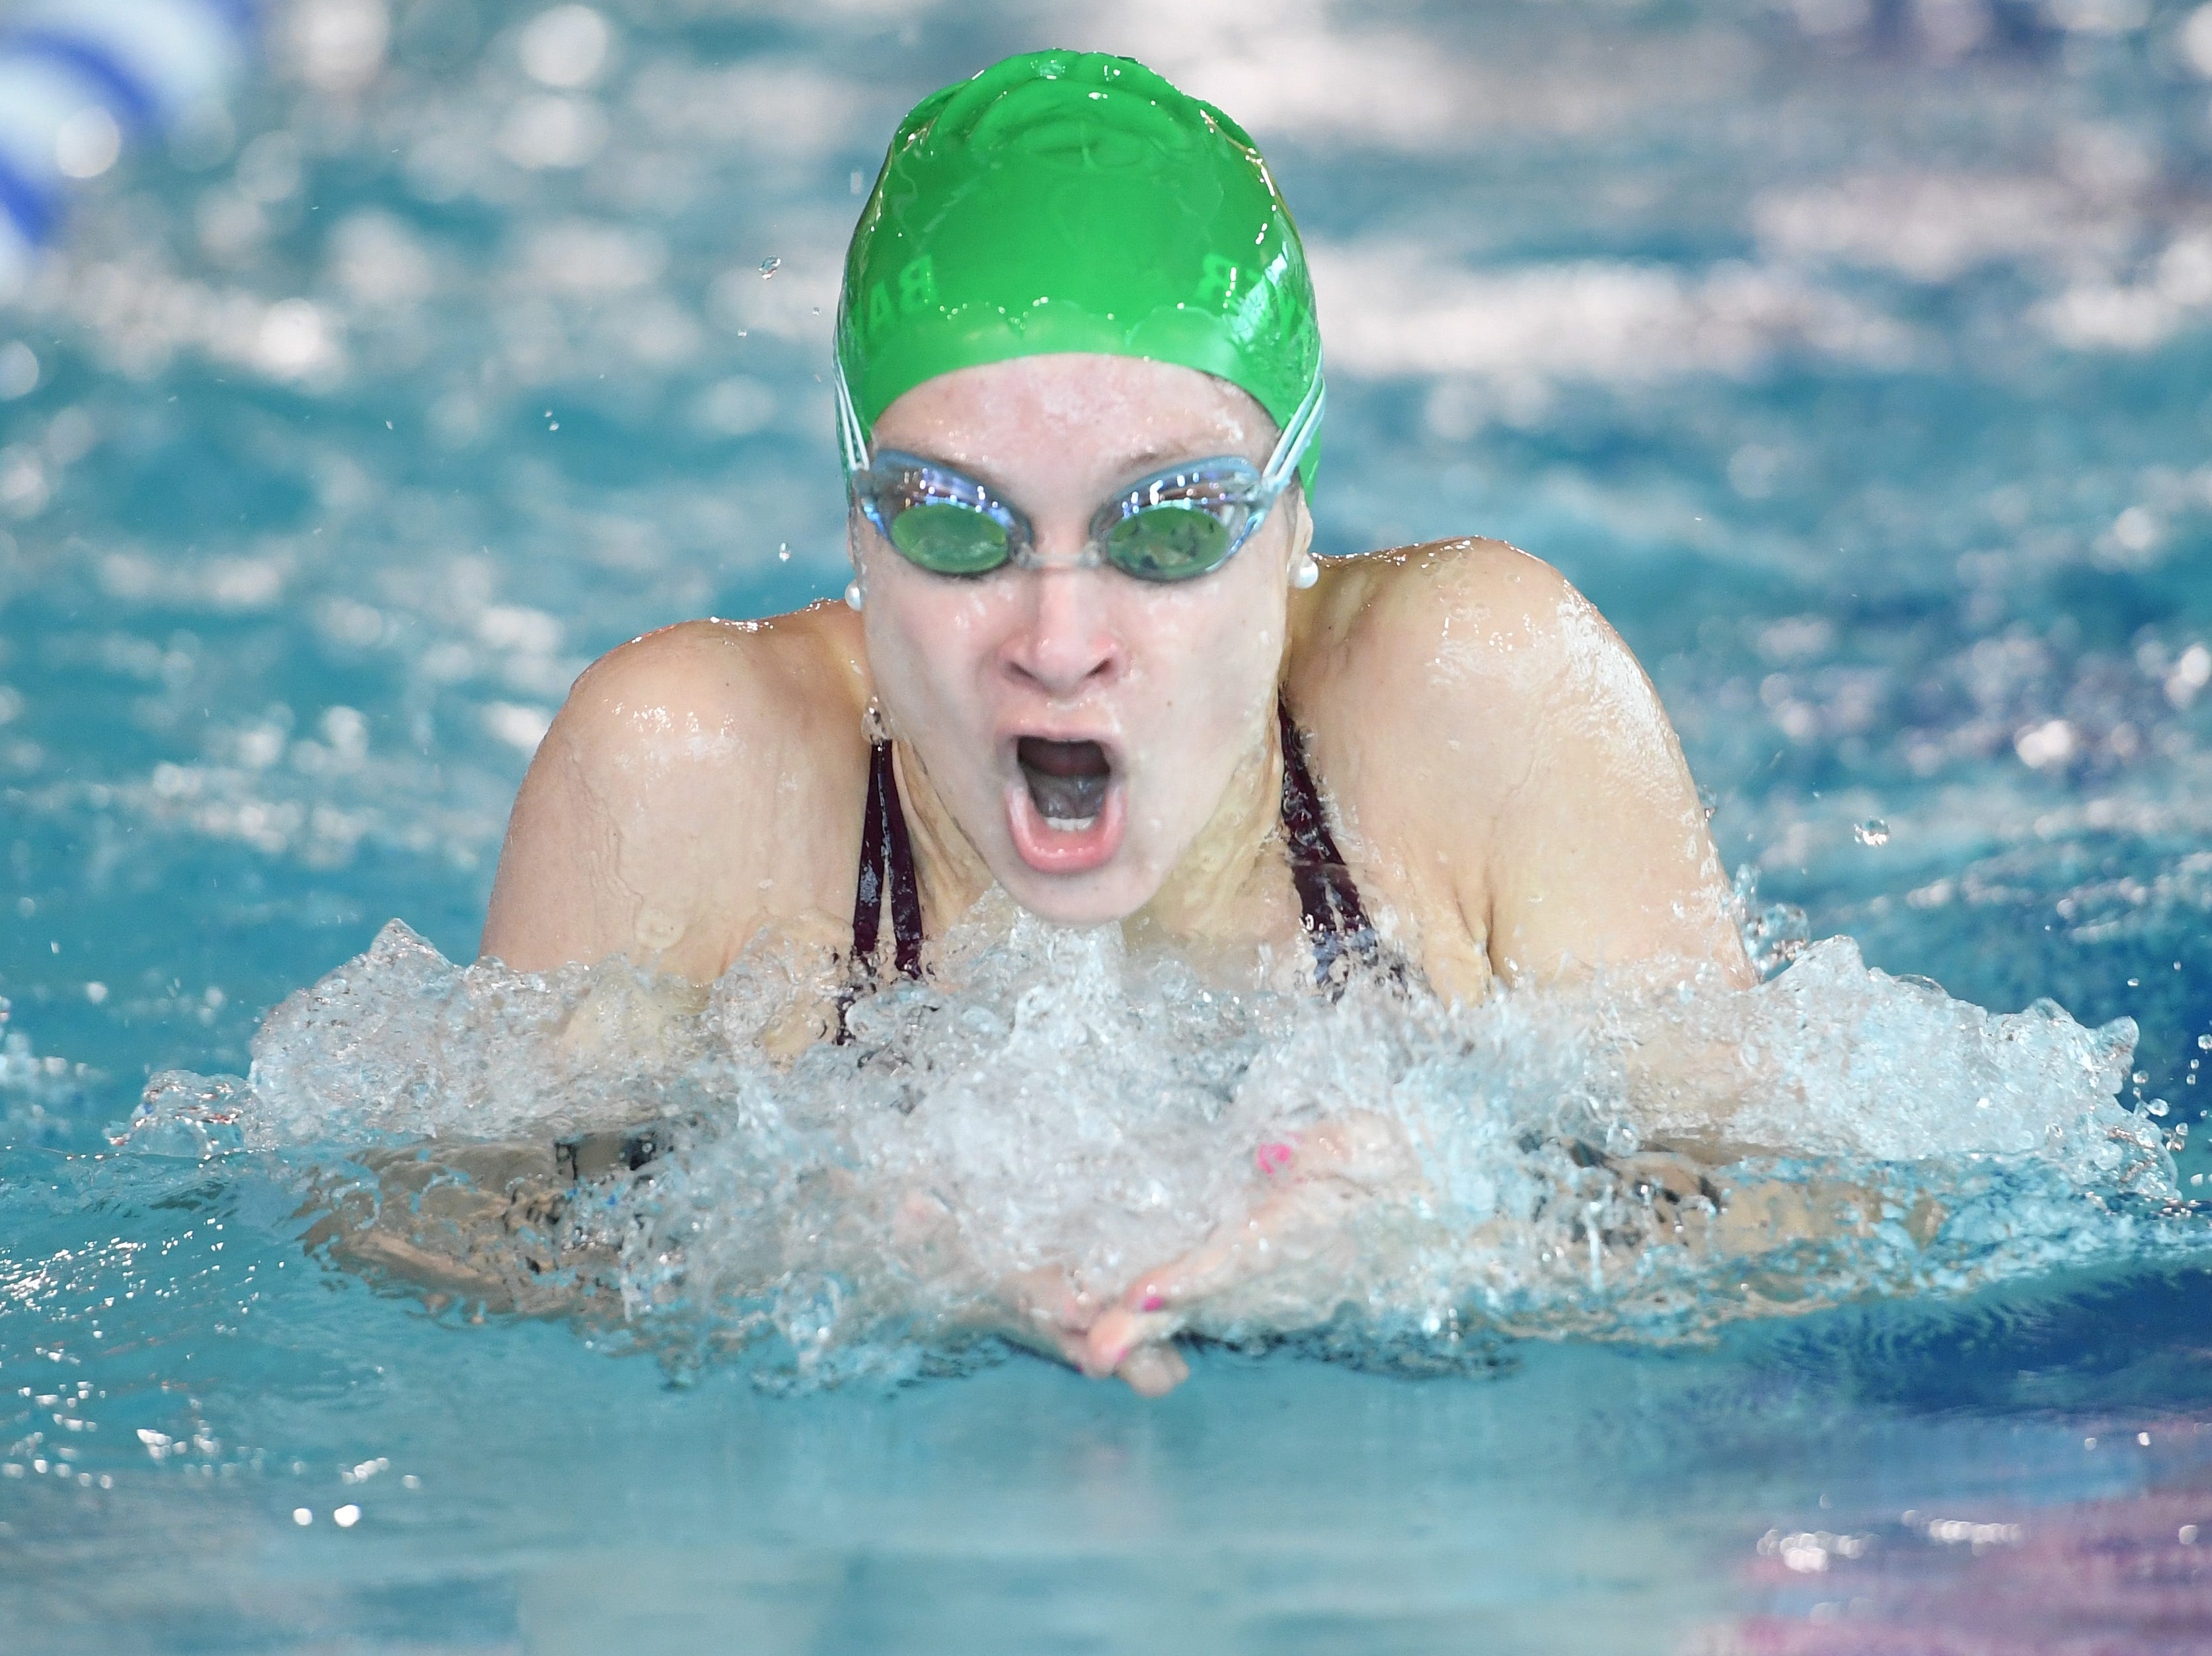 NJSIAA swimming sectional finals: Morristown vs Montclair in North I-A at Passaic County Technical Institute on Friday, February 15, 2019. Nicole Barkemeyer, of Morristown, in the 200 Medley Relay.